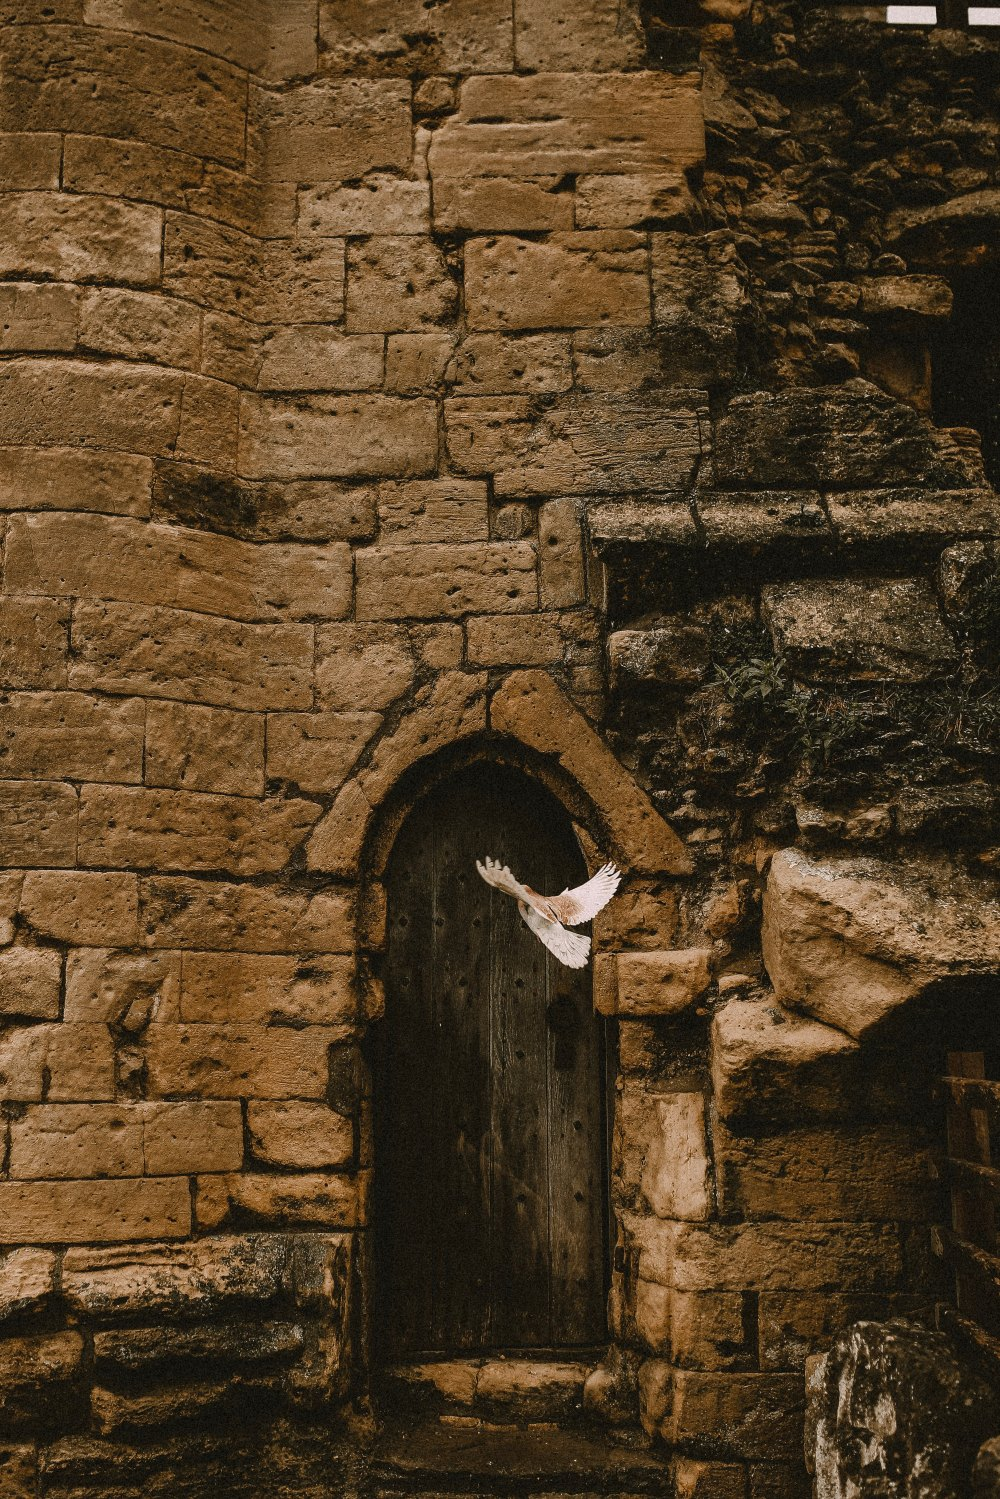 Fortress by rikki-austin-1592571-unsplash.jpg